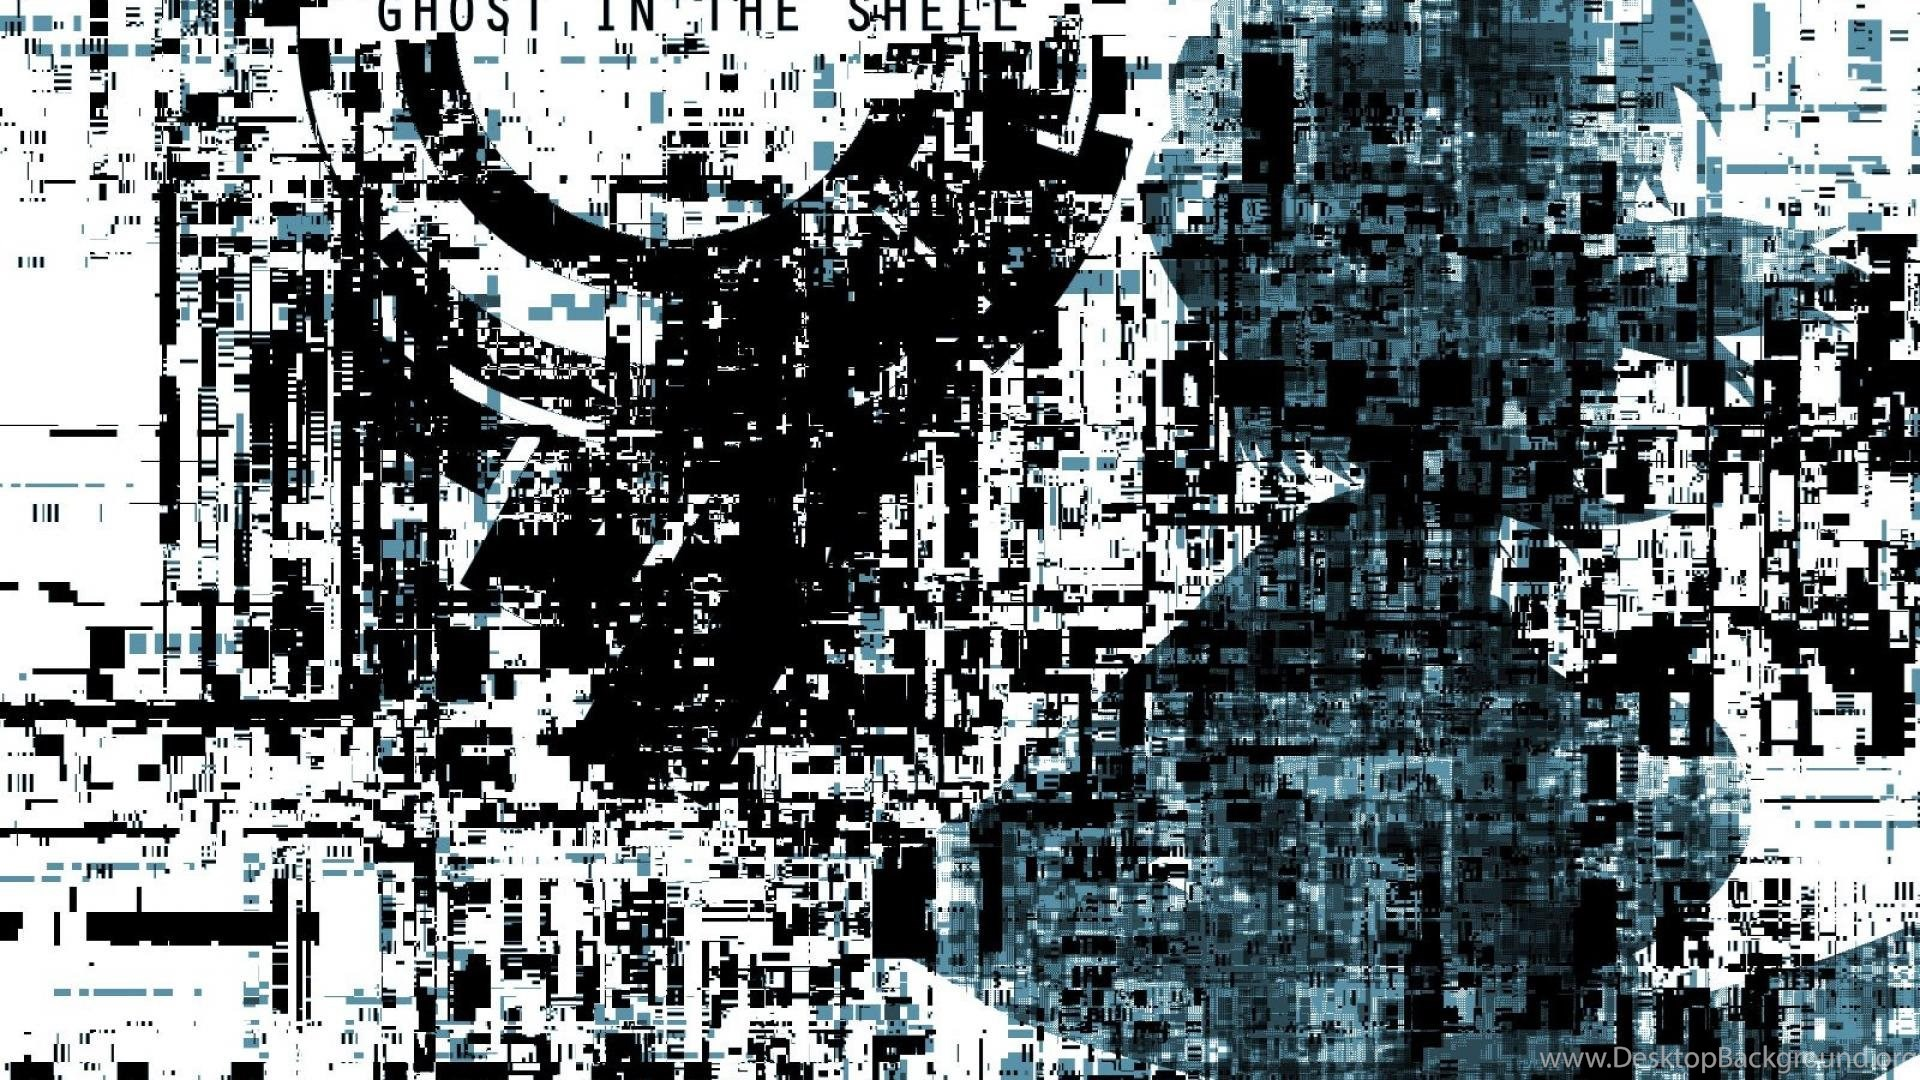 Gits Ghost In The Shell White Noise Manga Anime Hd Wallpapers